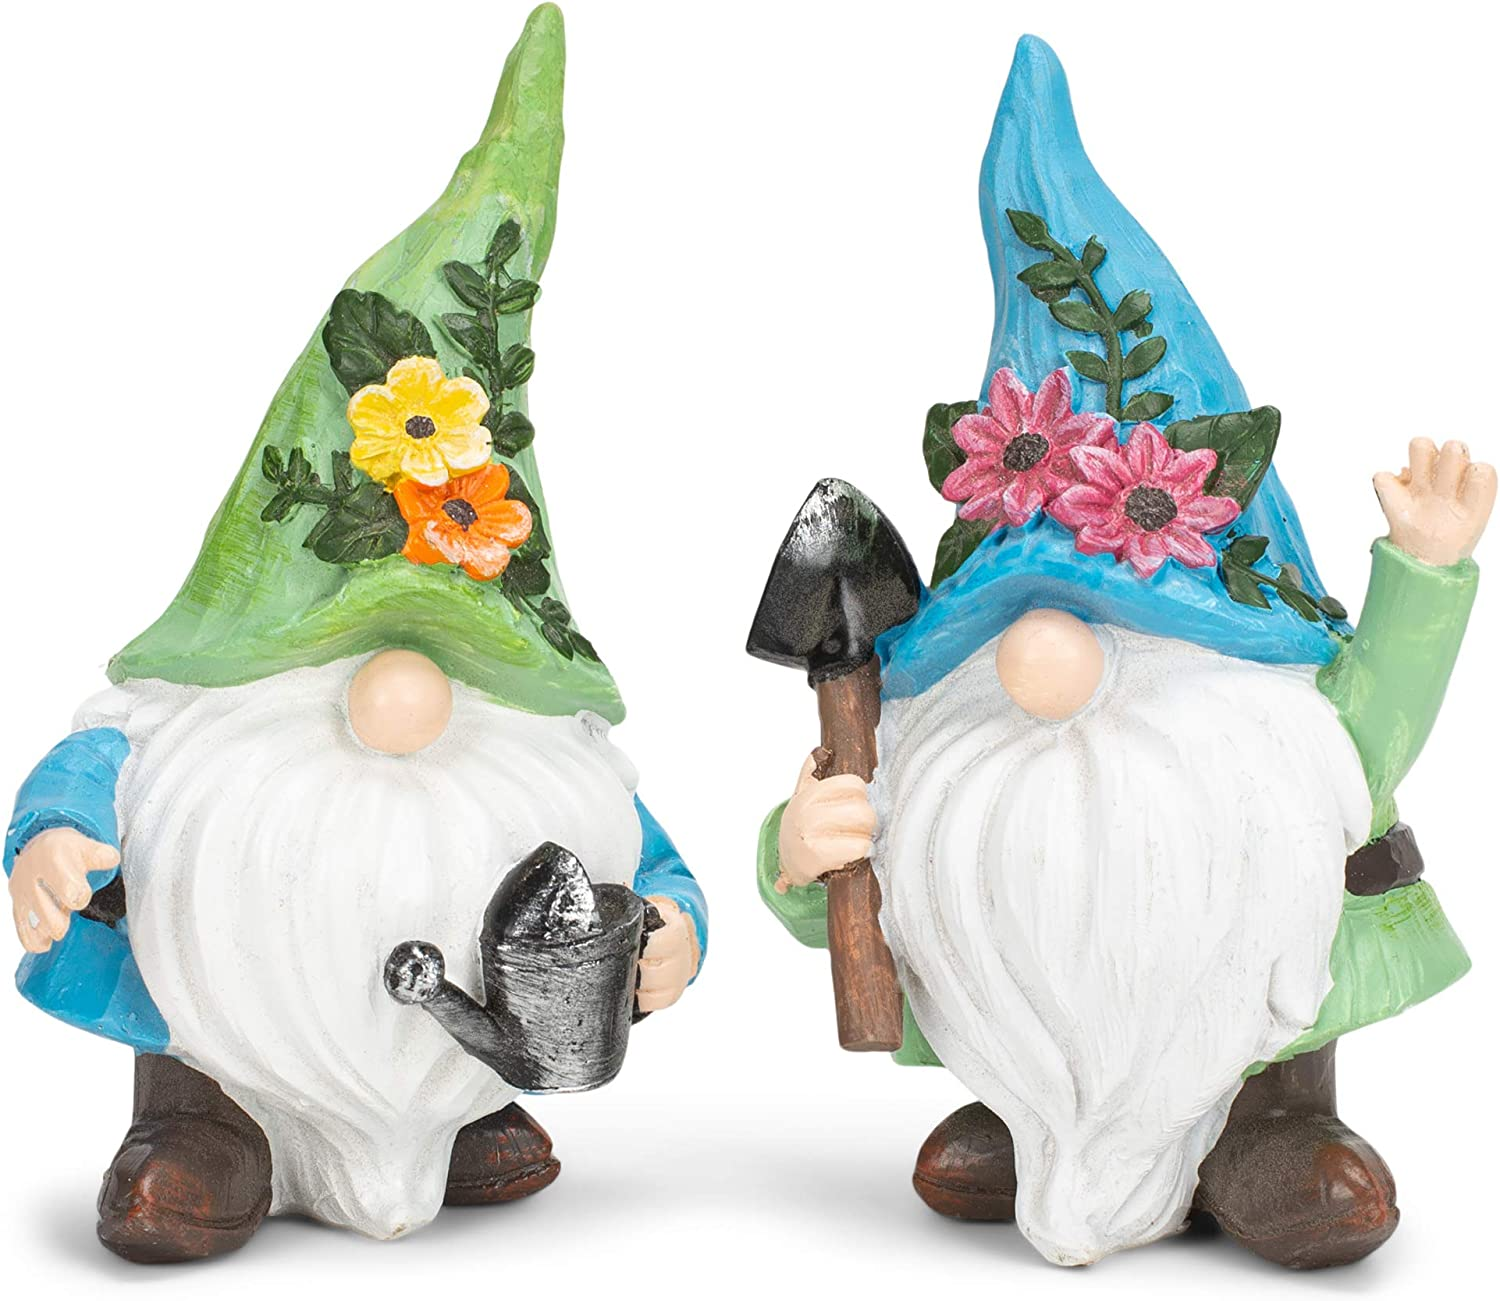 Flower Gnome Sky Blue and Green 5.75 Inches Polyresin Outdoor Garden Statue Set of 2